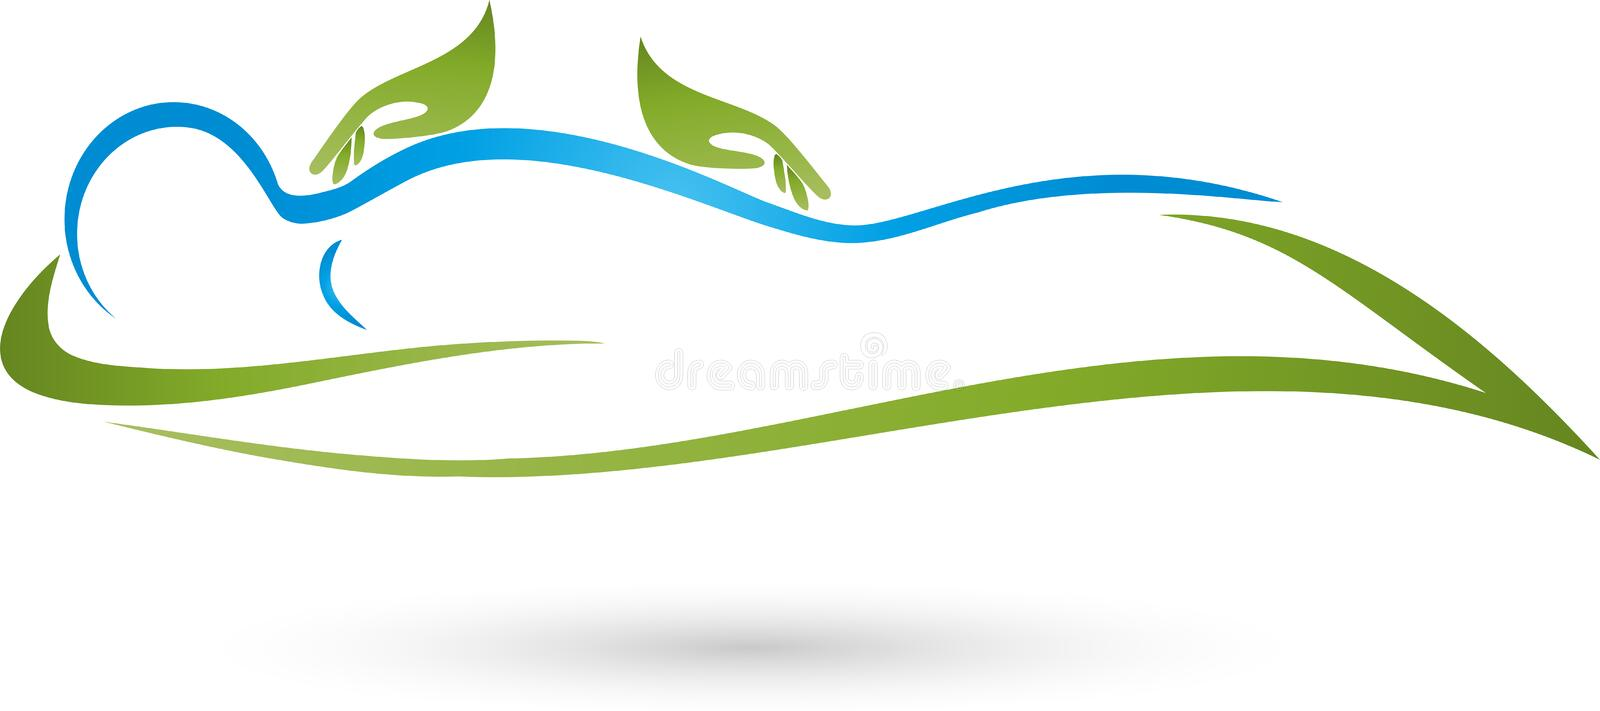 Hands and human, naturopath and physiotherapy logo vector illustration